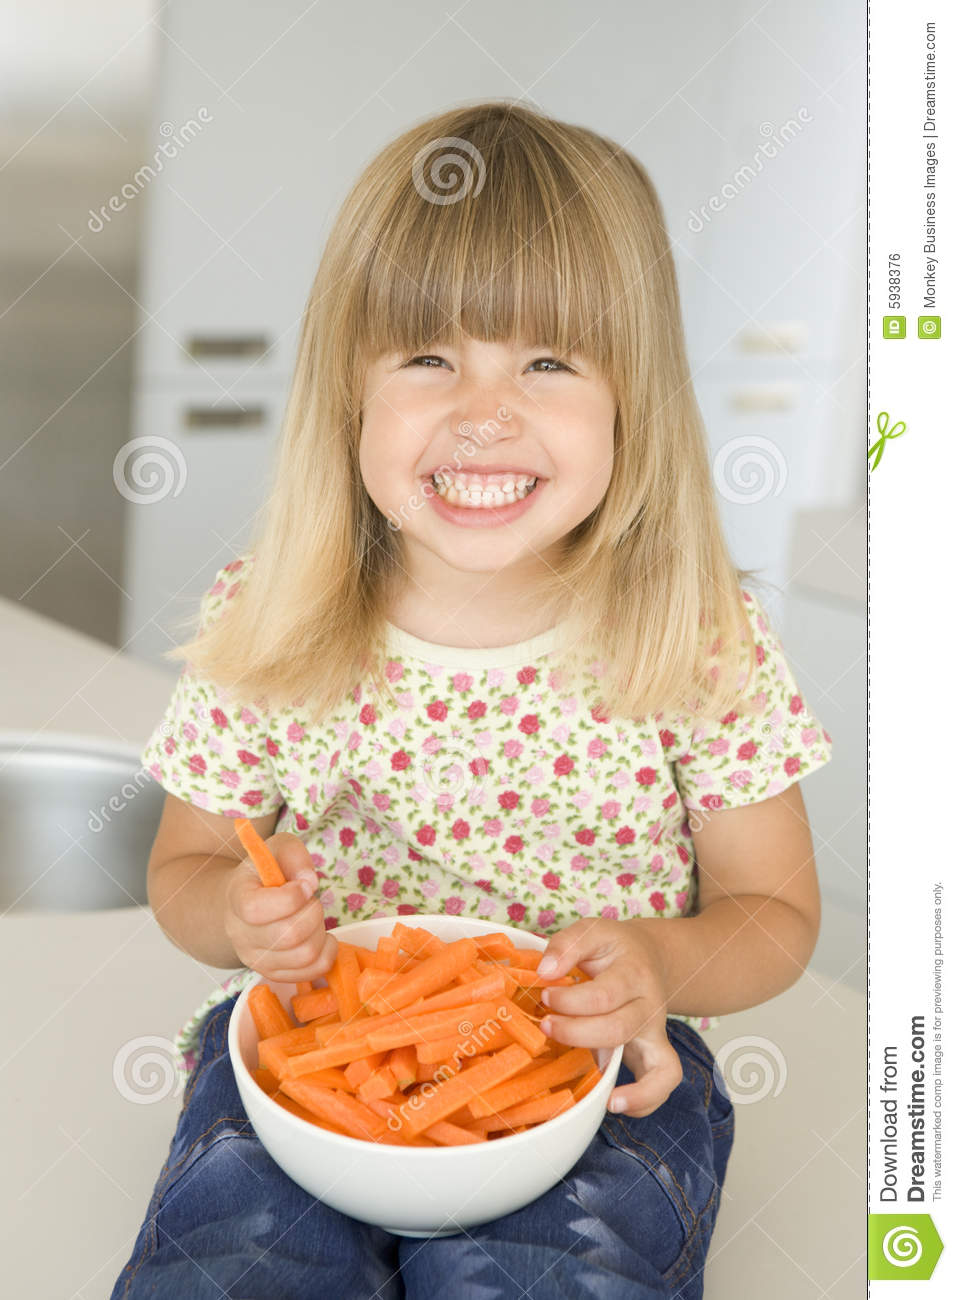 https://thumbs.dreamstime.com/z/young-girl-kitchen-eating-carrot-sticks-smiling-5938376.jpg